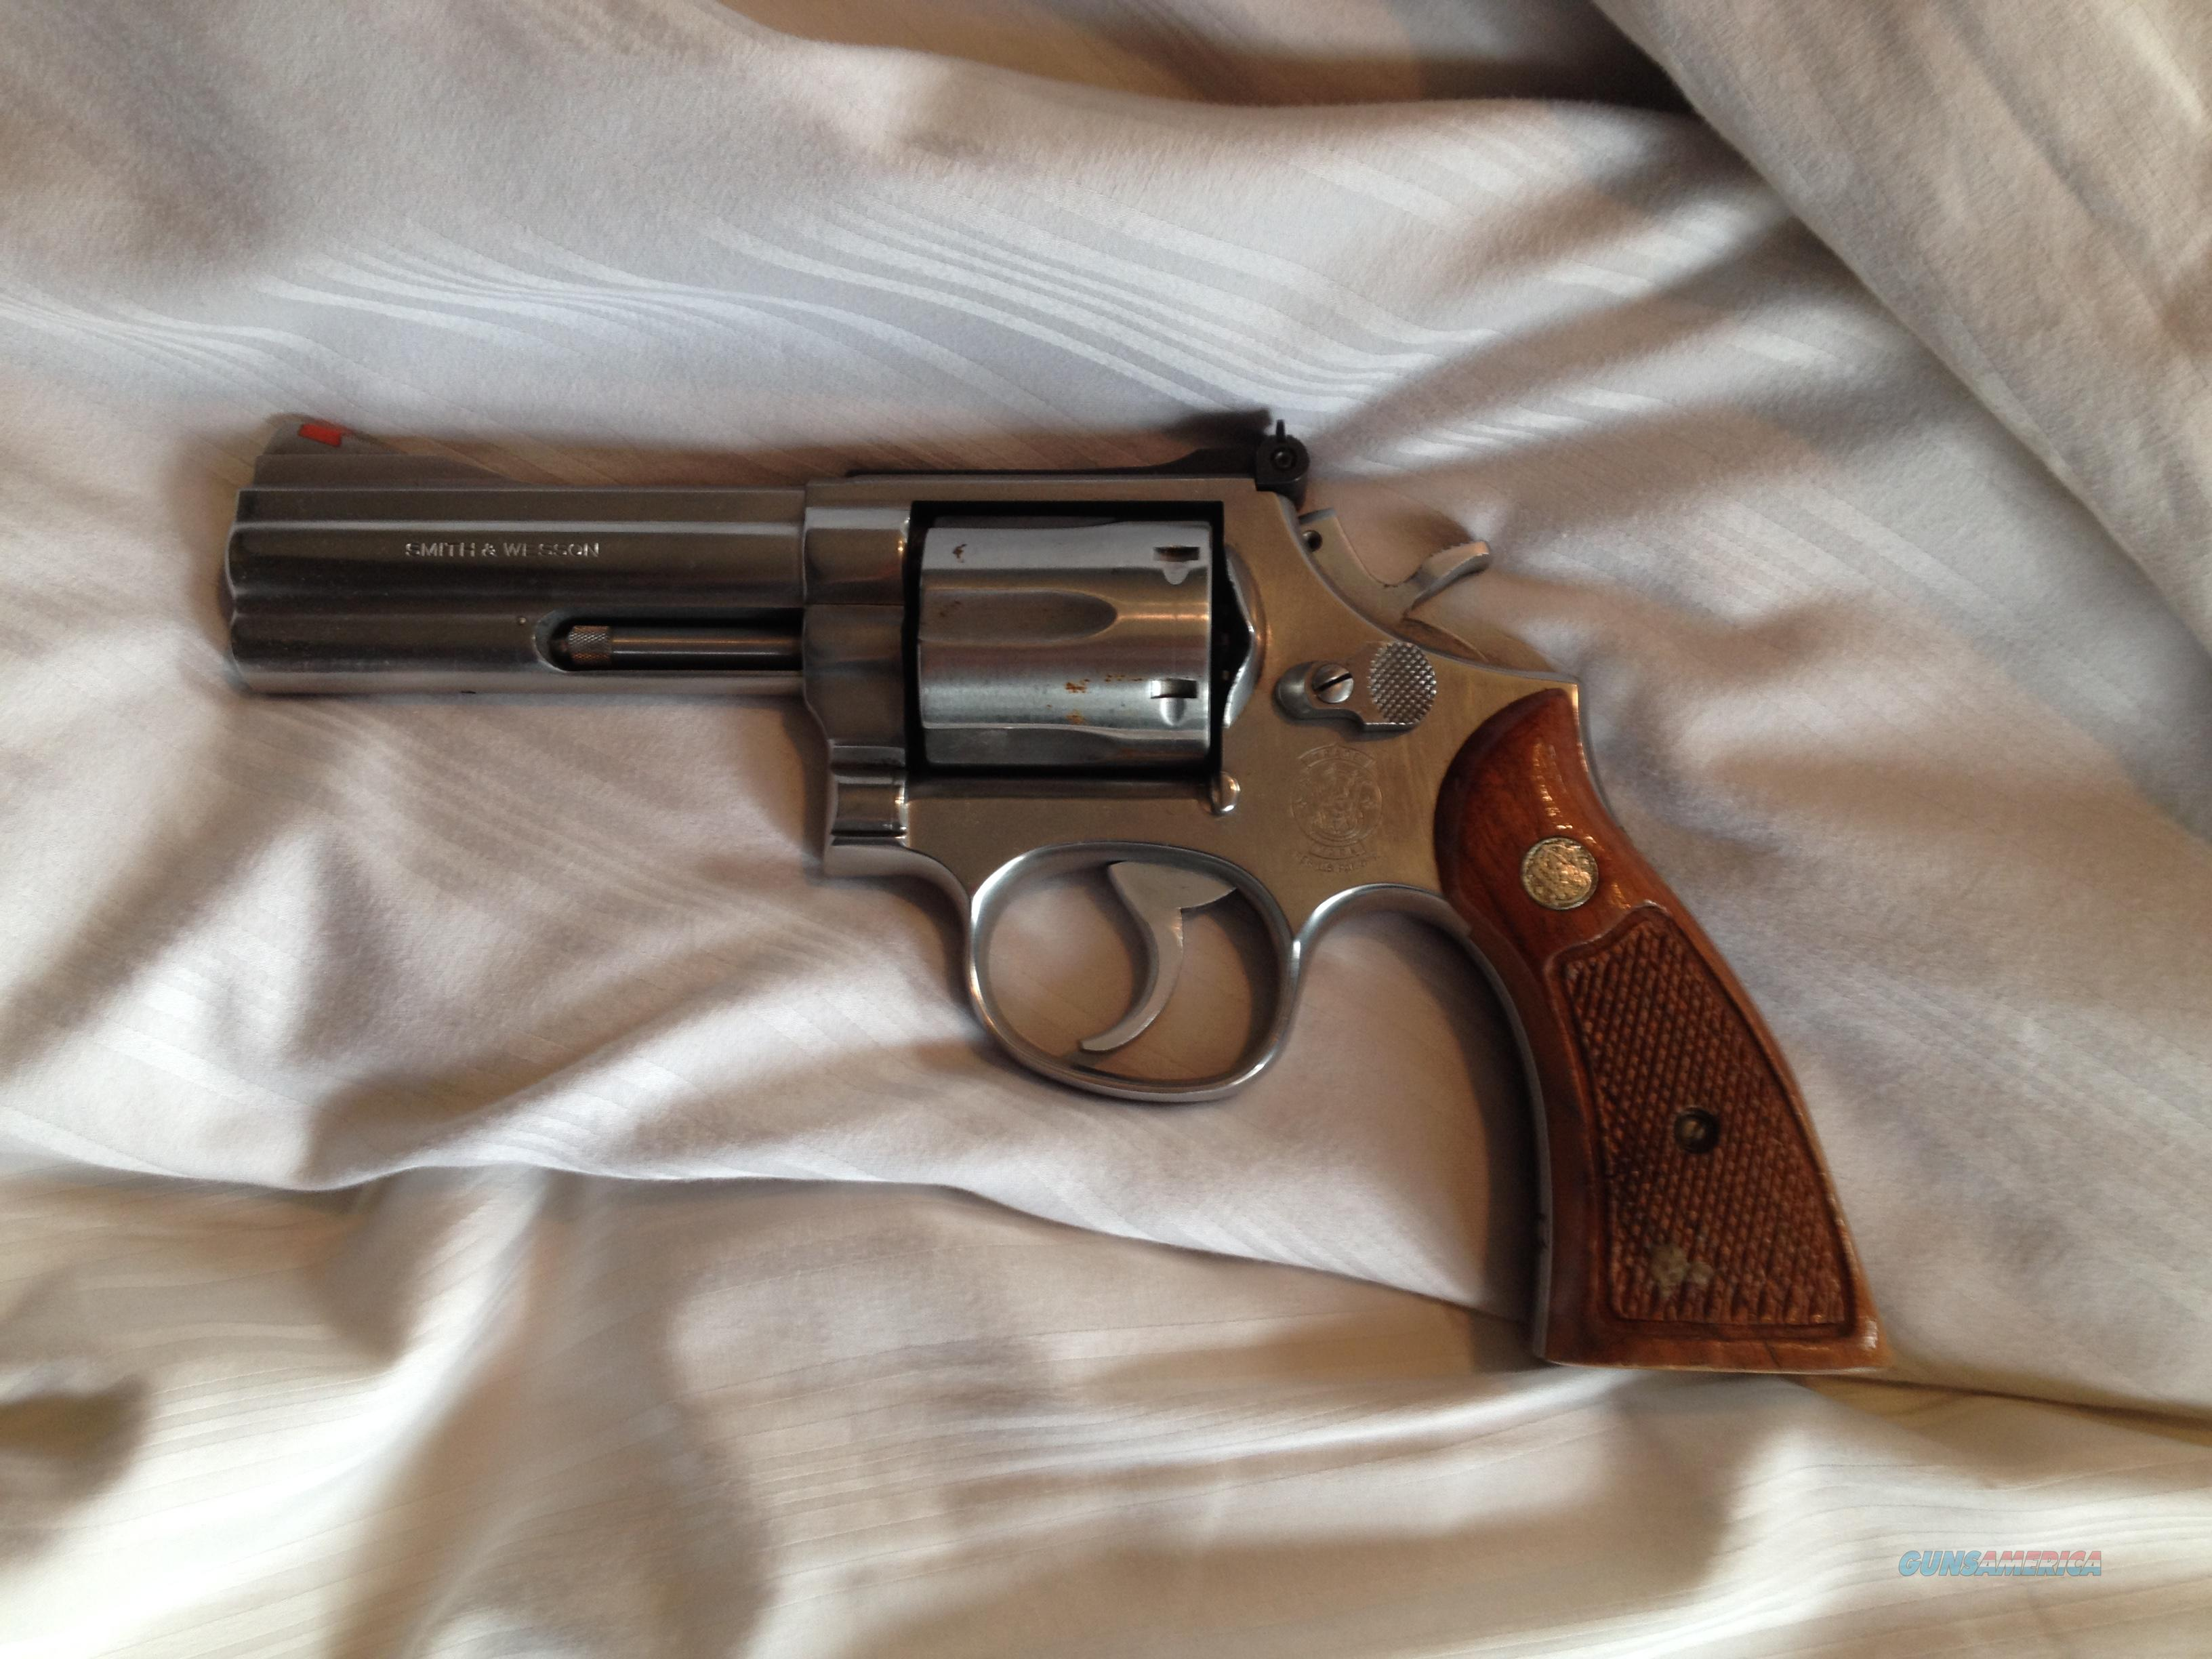 Smith & Wesson .357 Magnum Revolver Model 686 for sale